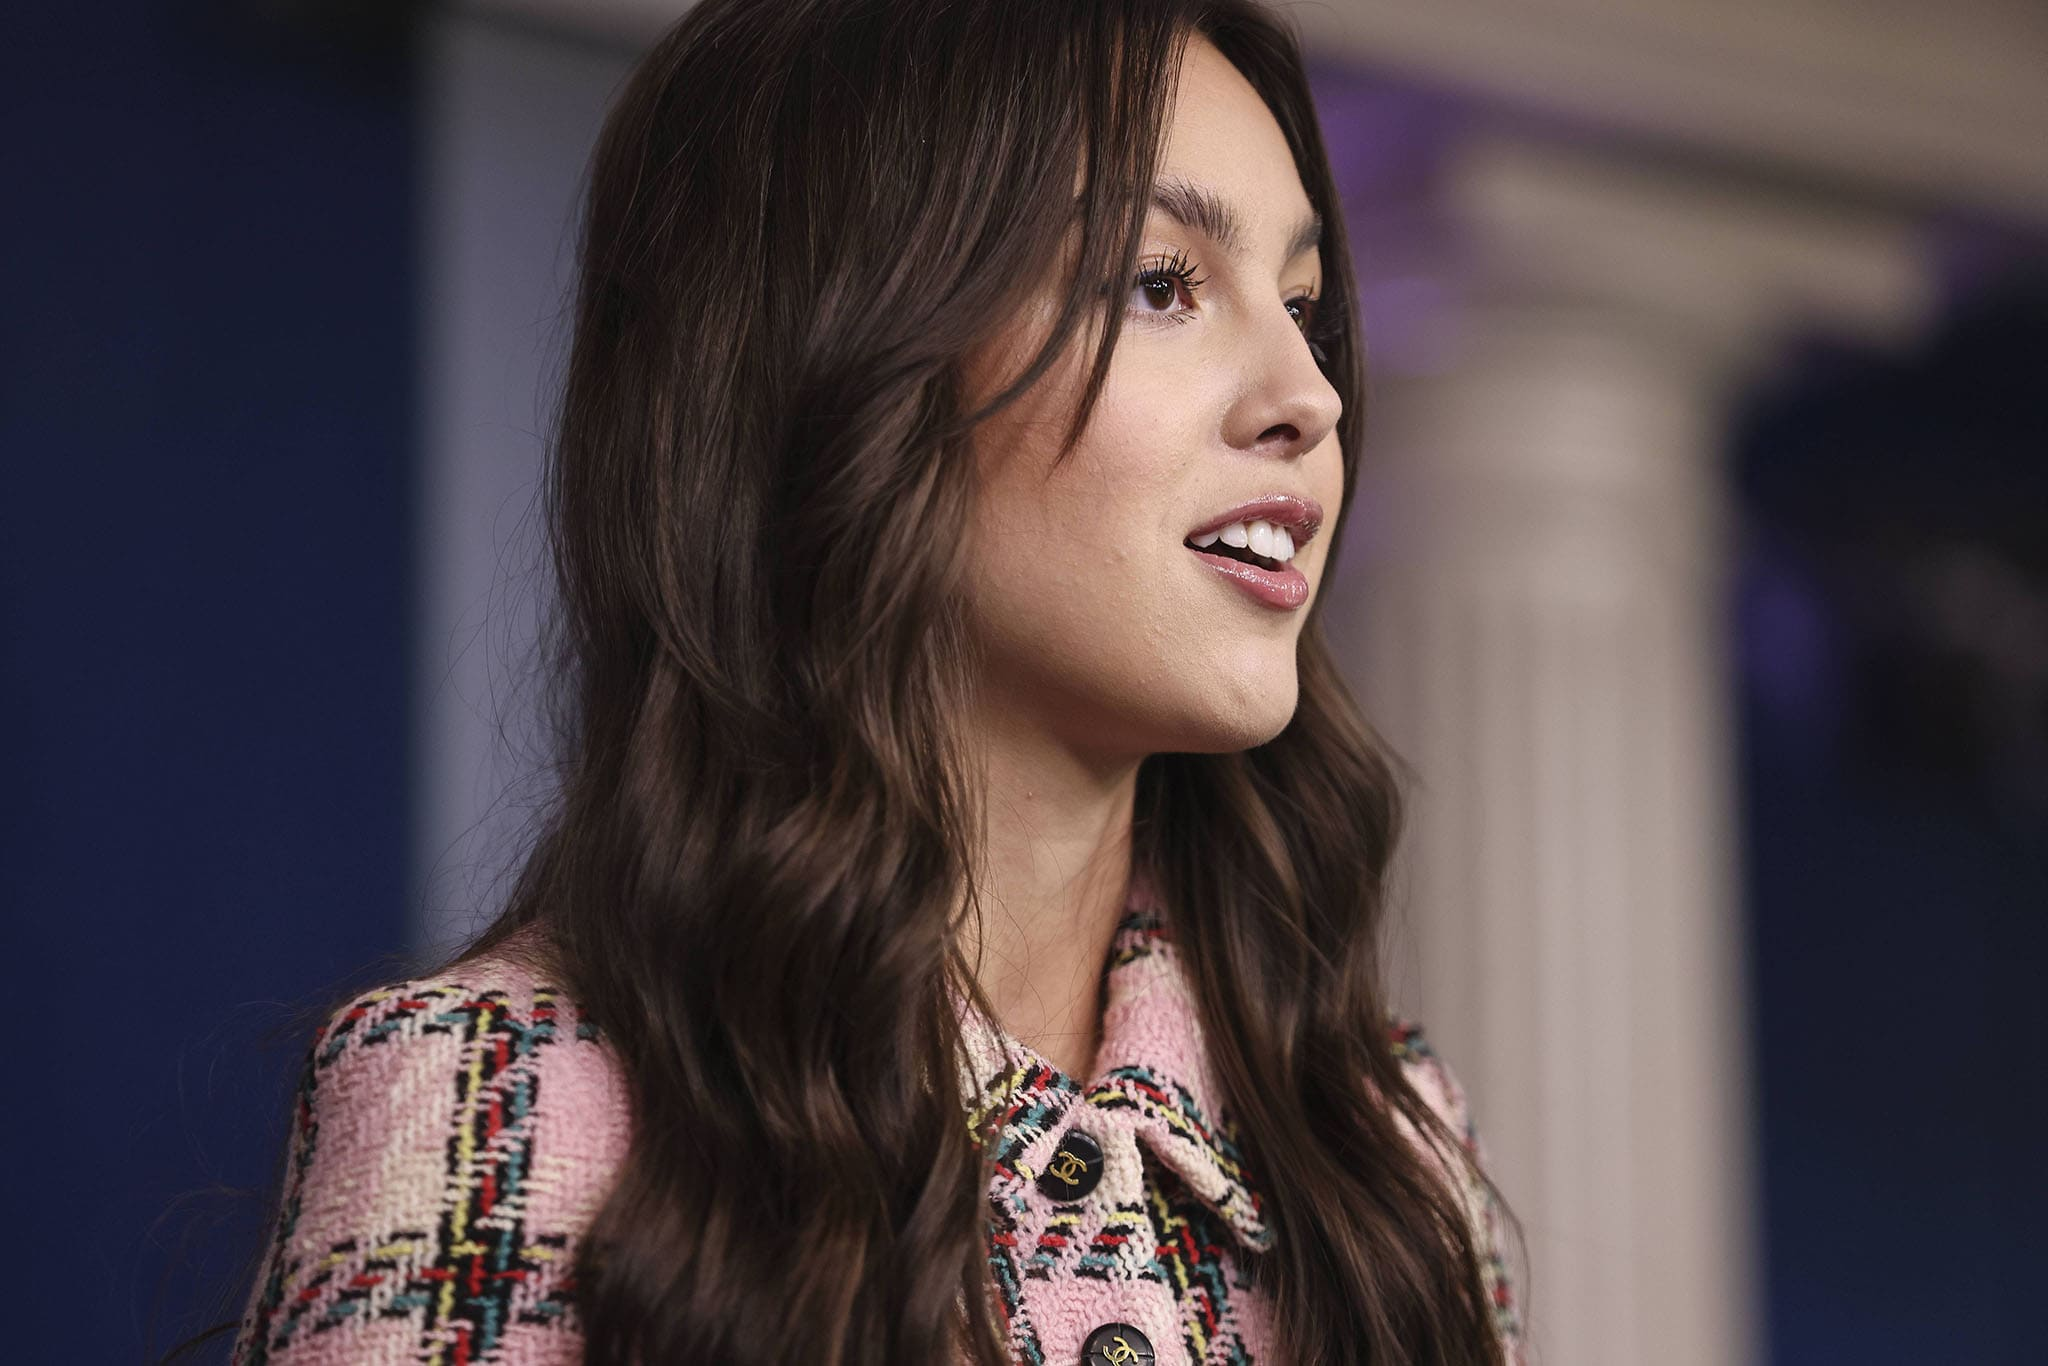 Olivia Rodrigo speaks about the importance of youth vaccination during the press briefing at the White House on July 14, 2021